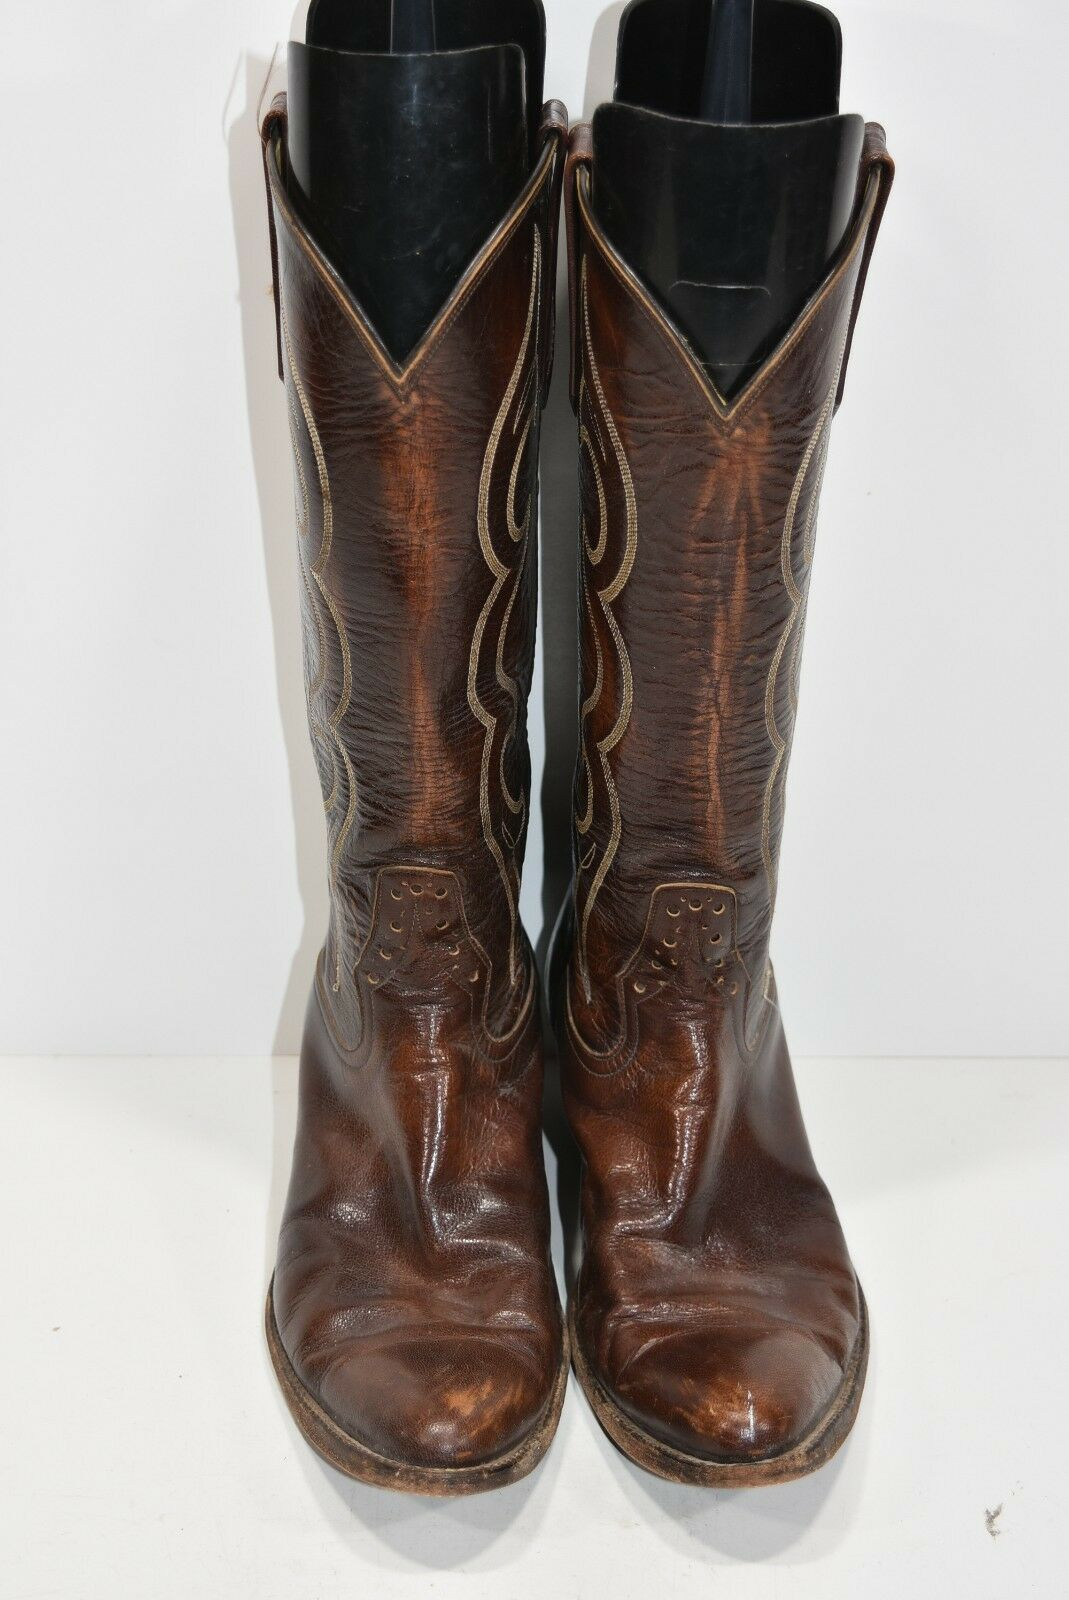 RIOS OF MERCEDES MENS 8 D BROWN LEATHER CLASSIC WESTERN COWBOY BOOTS ROPERS